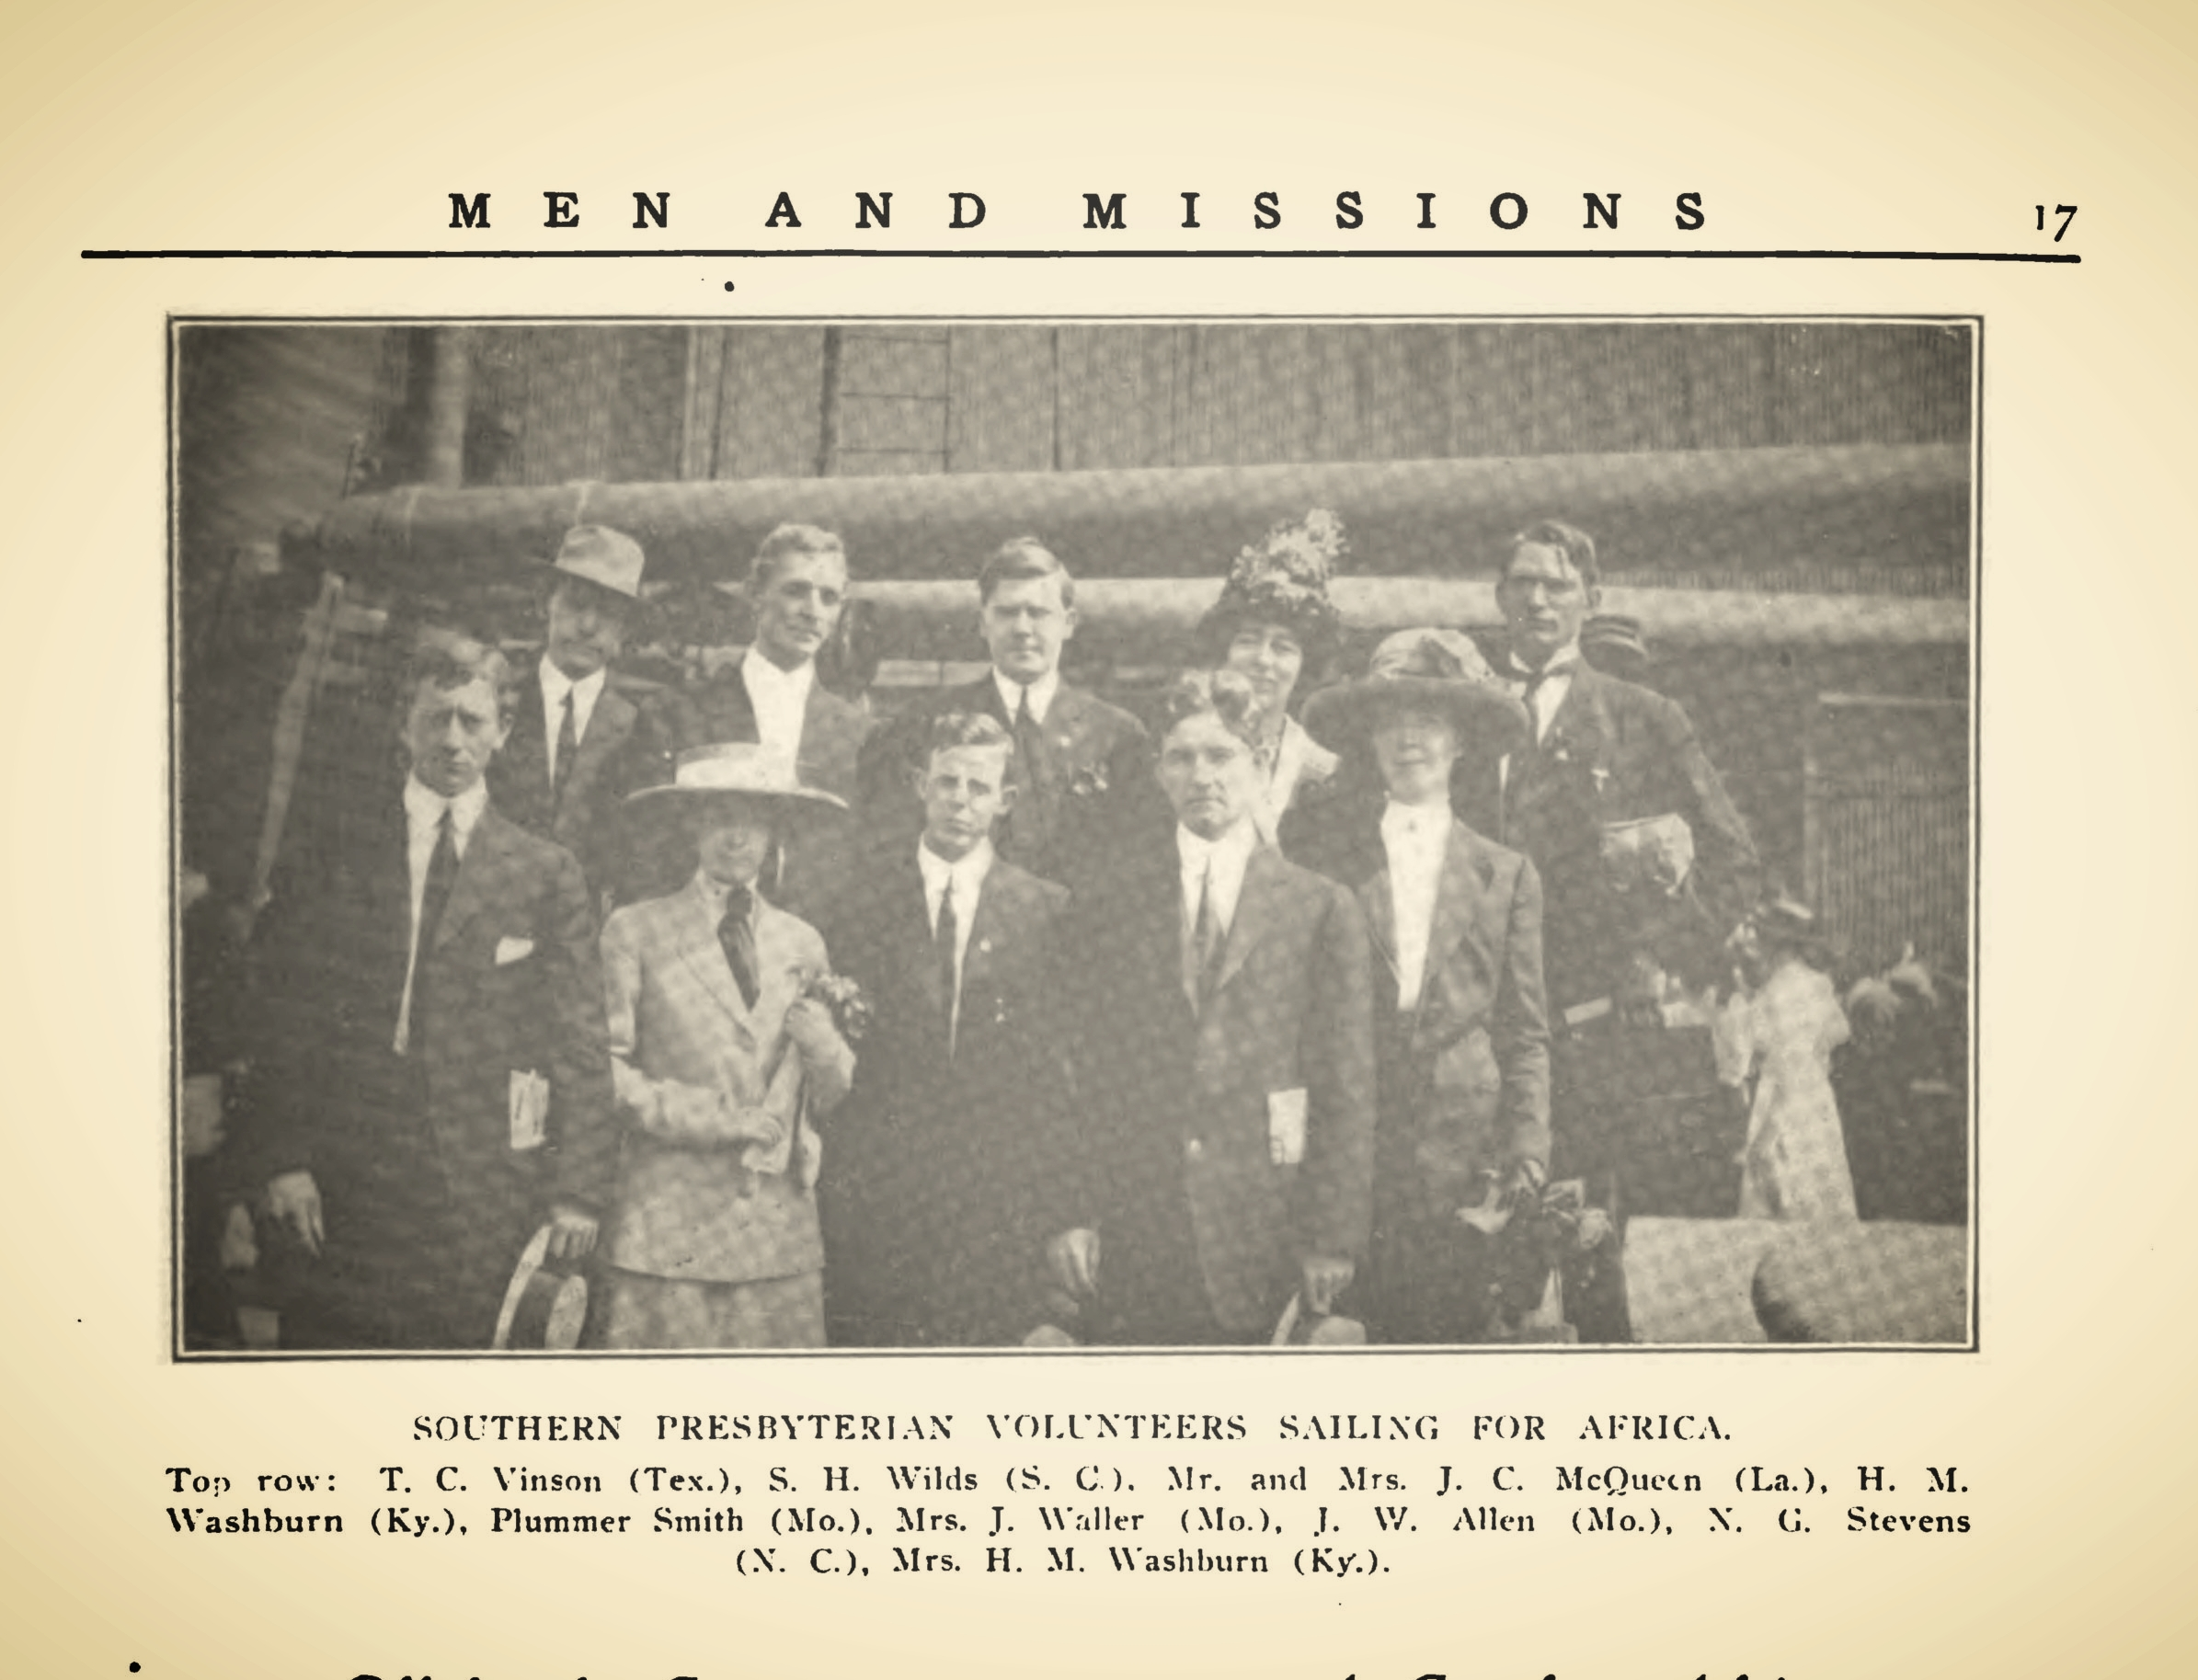 Source: Men and Missions, Vol. 4 (1912)